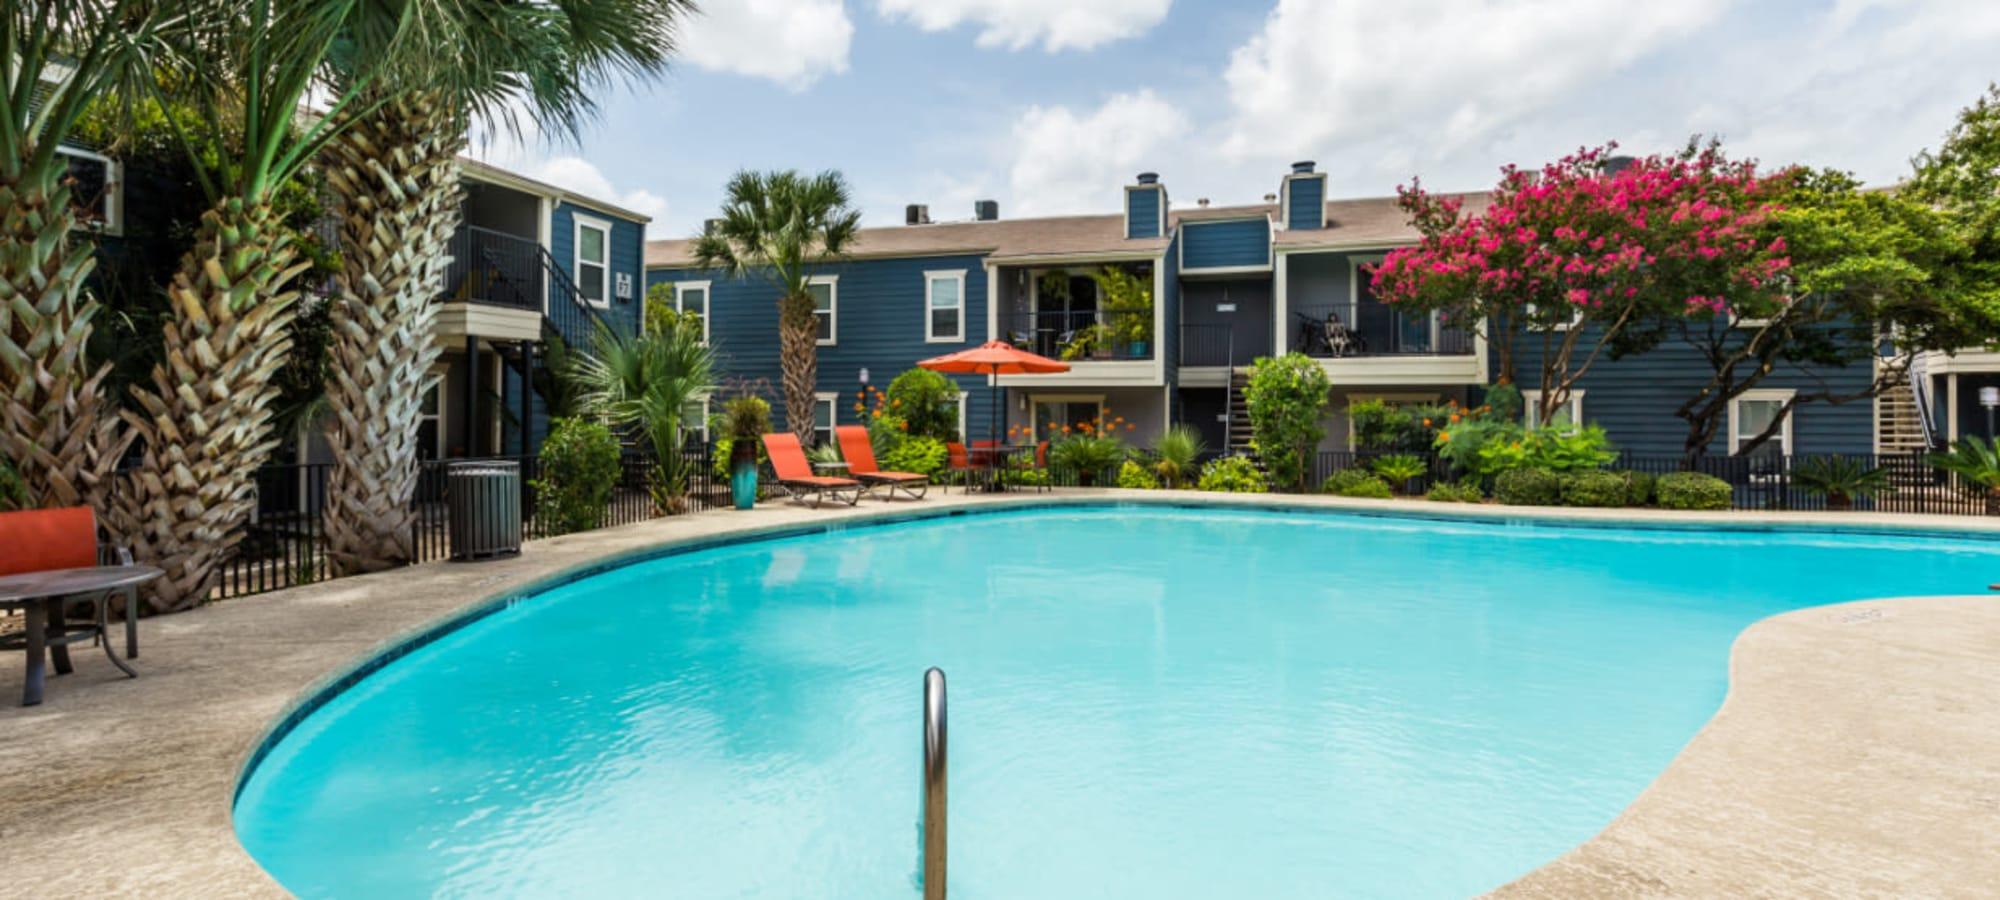 Apply to live at Austin Midtown in Austin, Texas